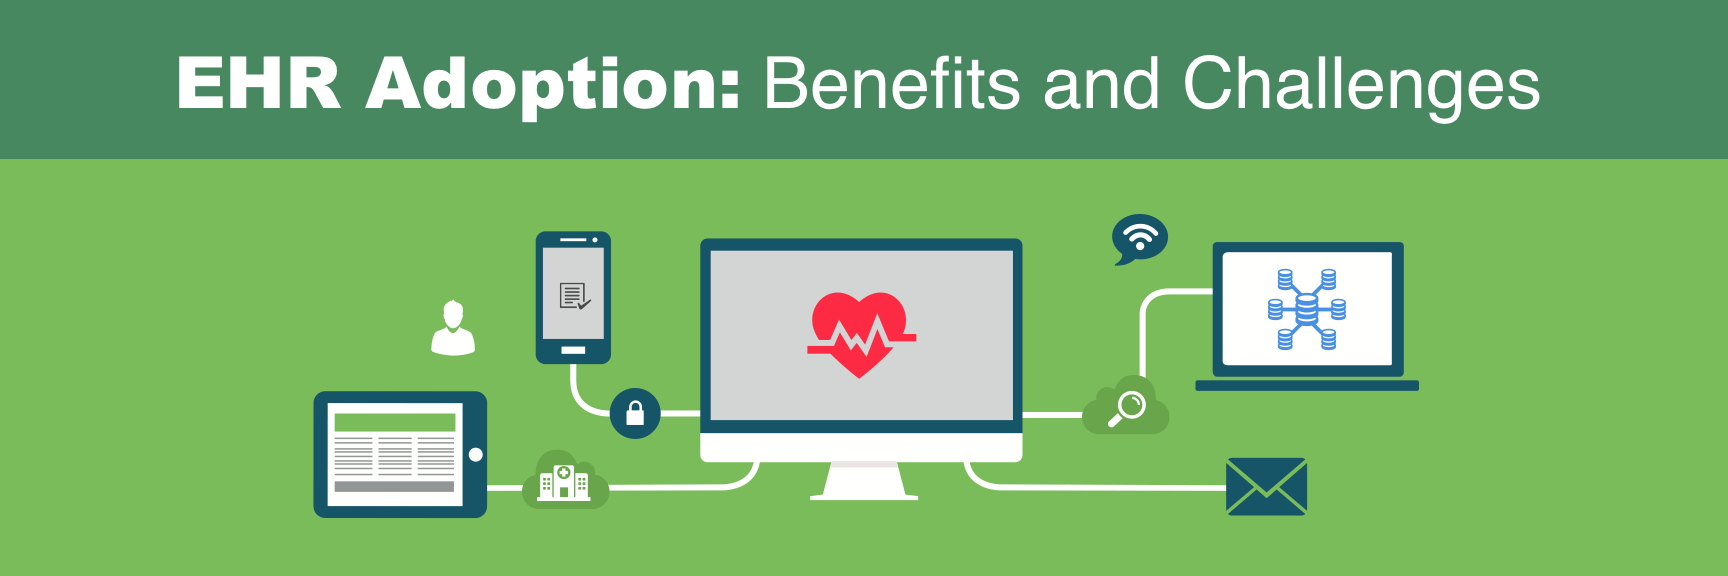 EHR Adoption Benefits and Challenges